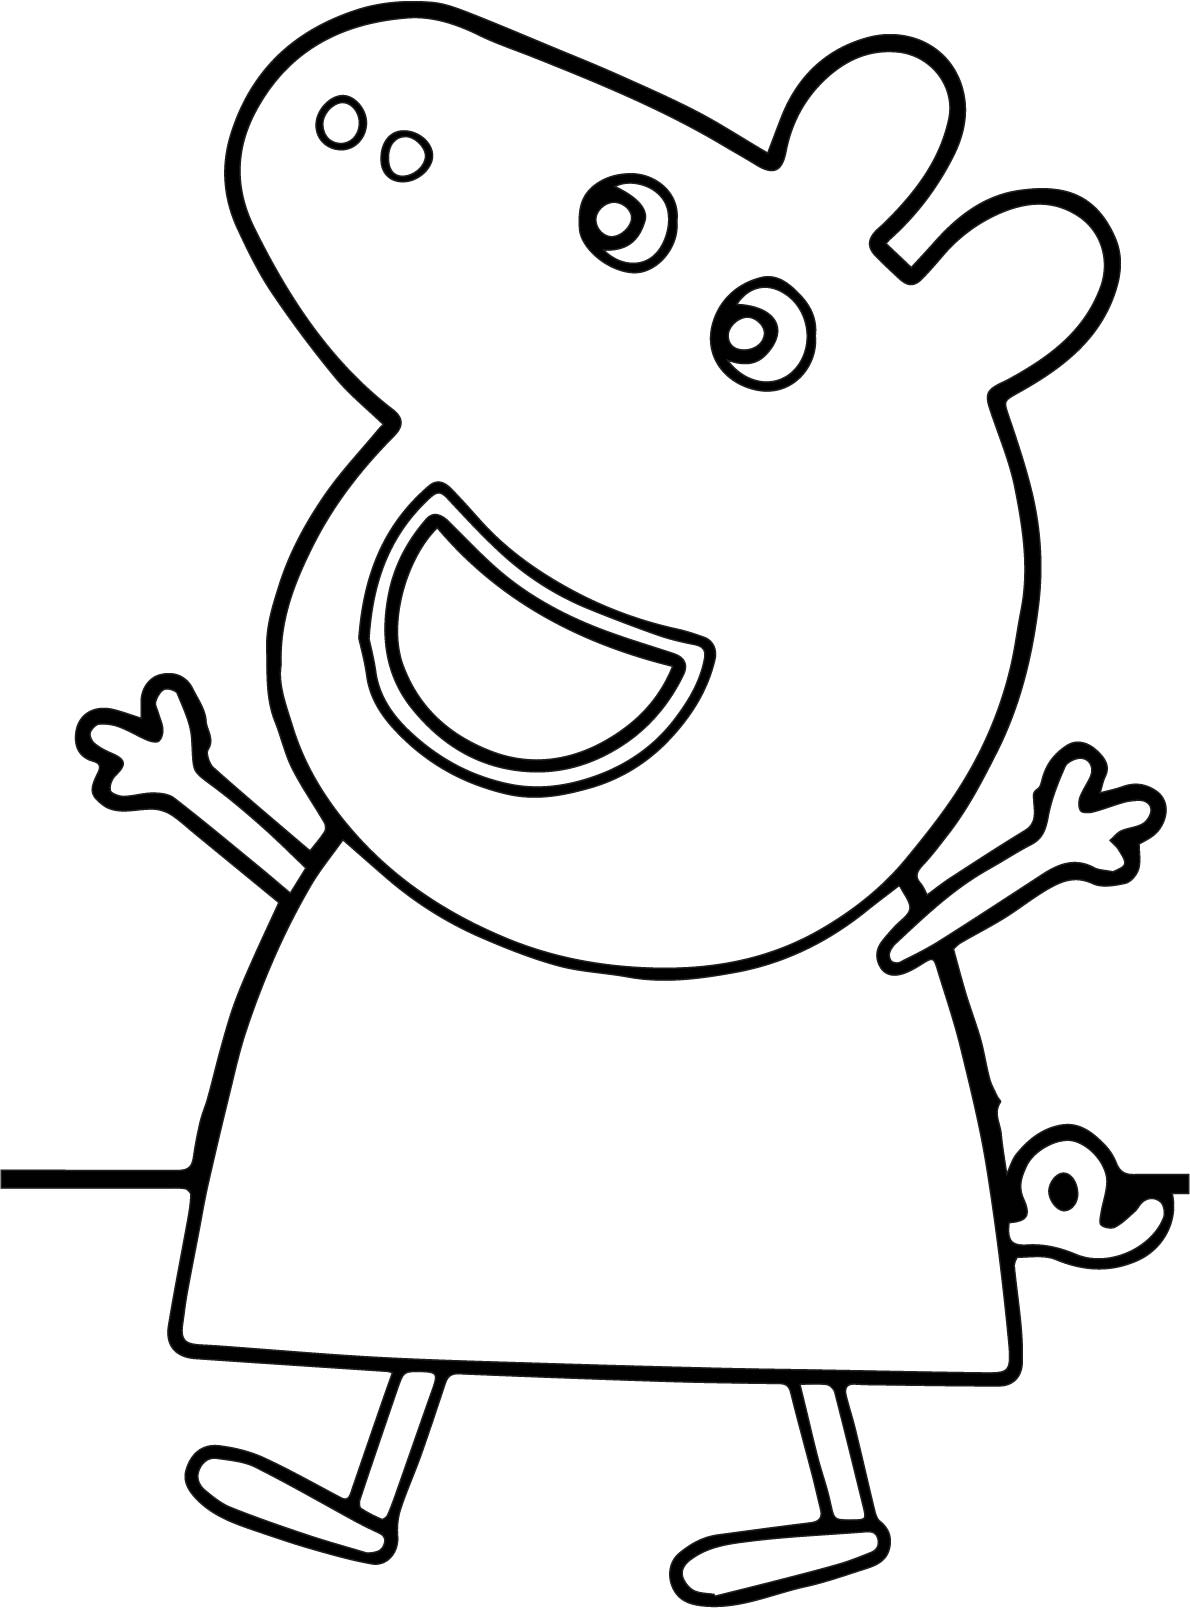 free peppa pig coloring pages - peppa pig happy coloring page